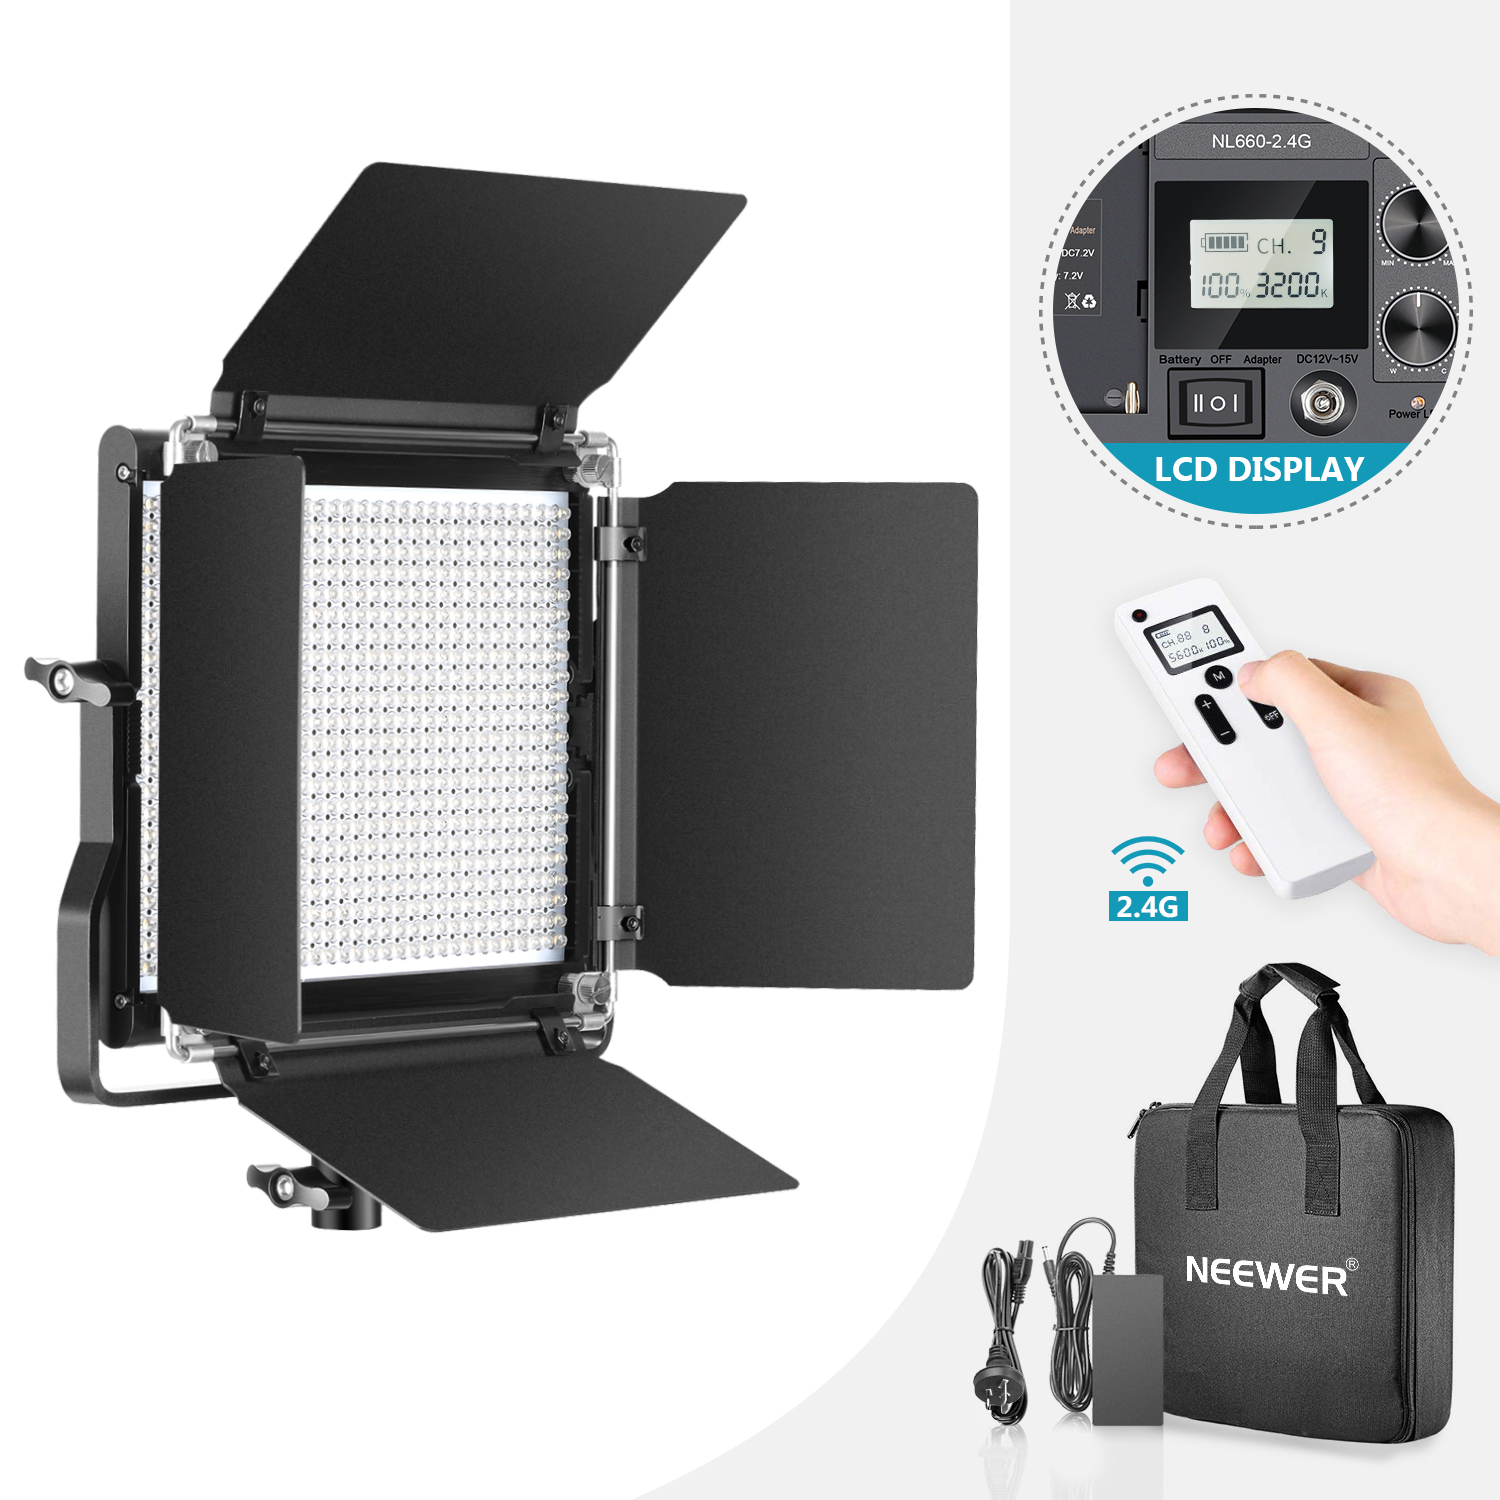 Neewer Advanced LCD 2.4G 660 LED Video Light, Dimmable Bi-Color LED Panel for Studio, YouTube, Product Photography, Video image